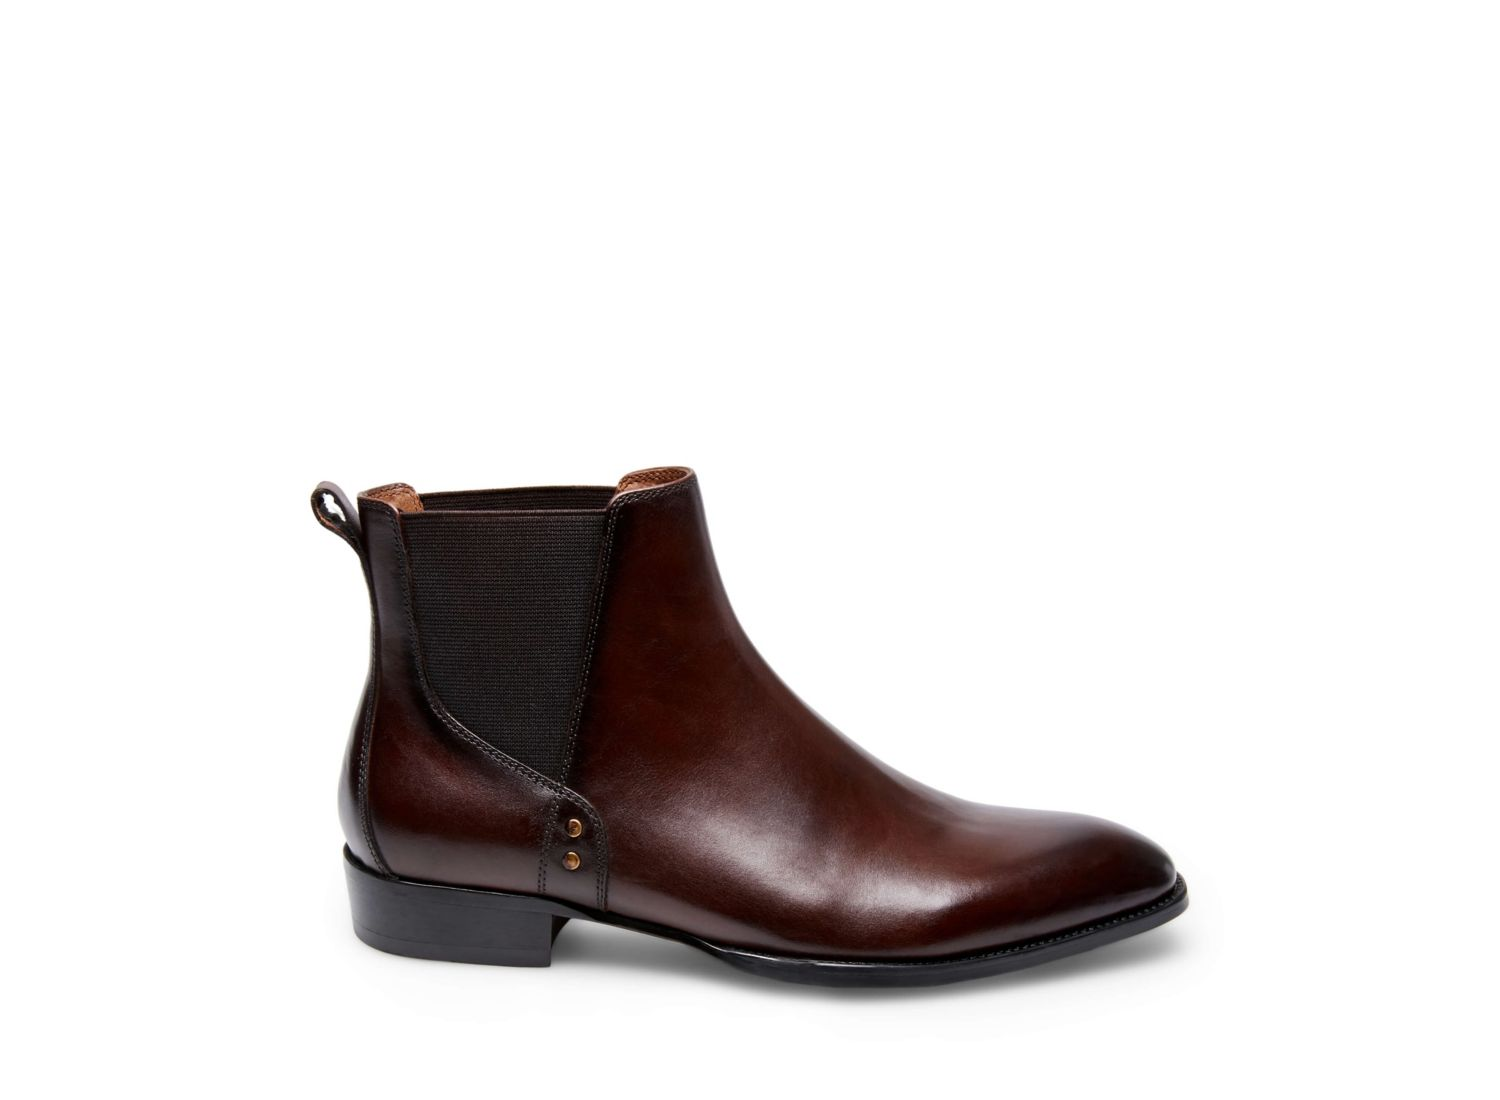 SIMON BROWN LEATHER - Steve Madden